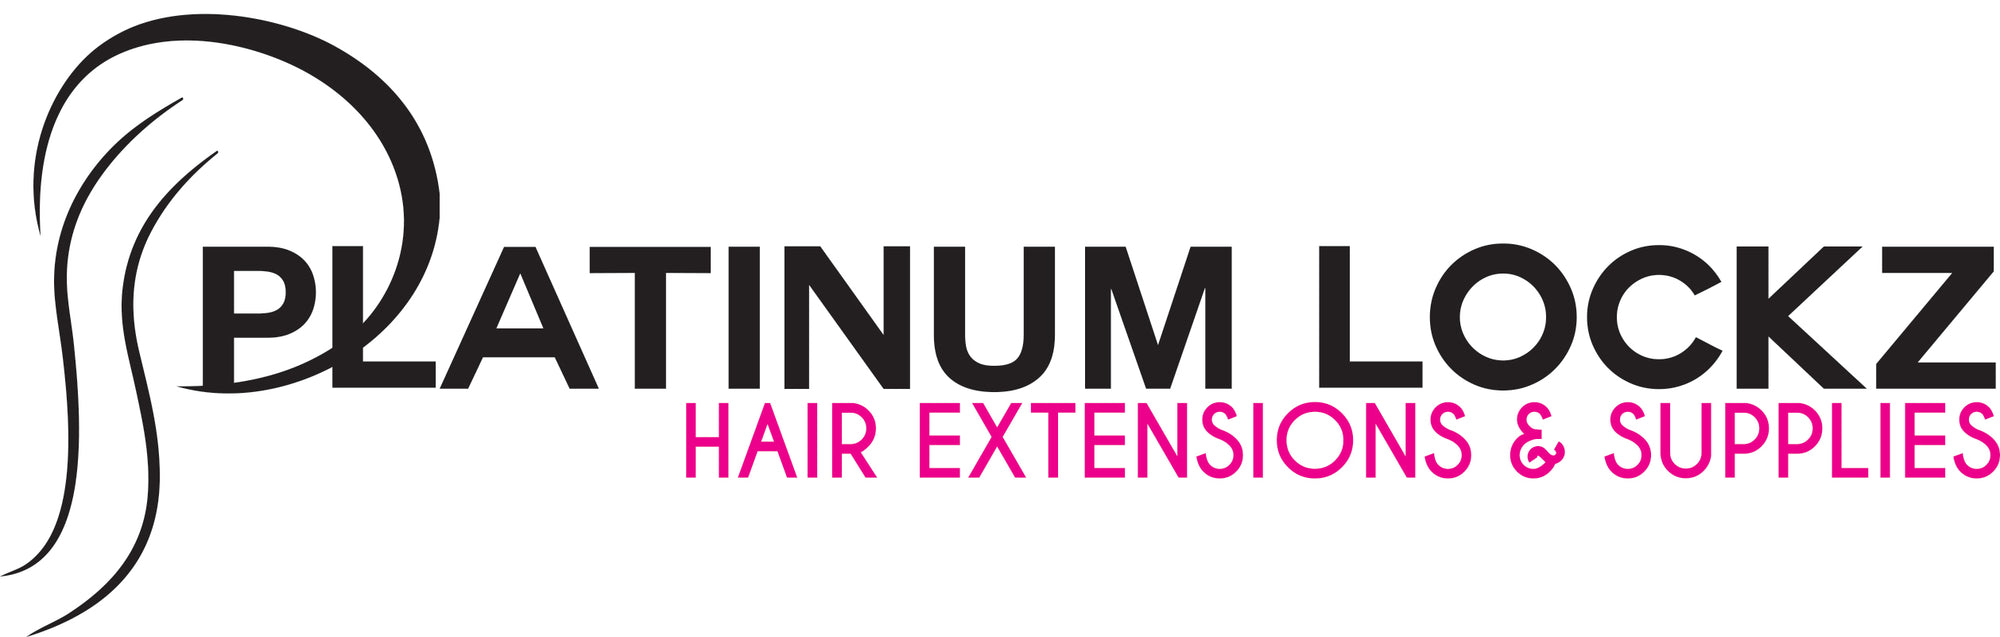 Platinum Lockz | Hair Extensions & Supplies